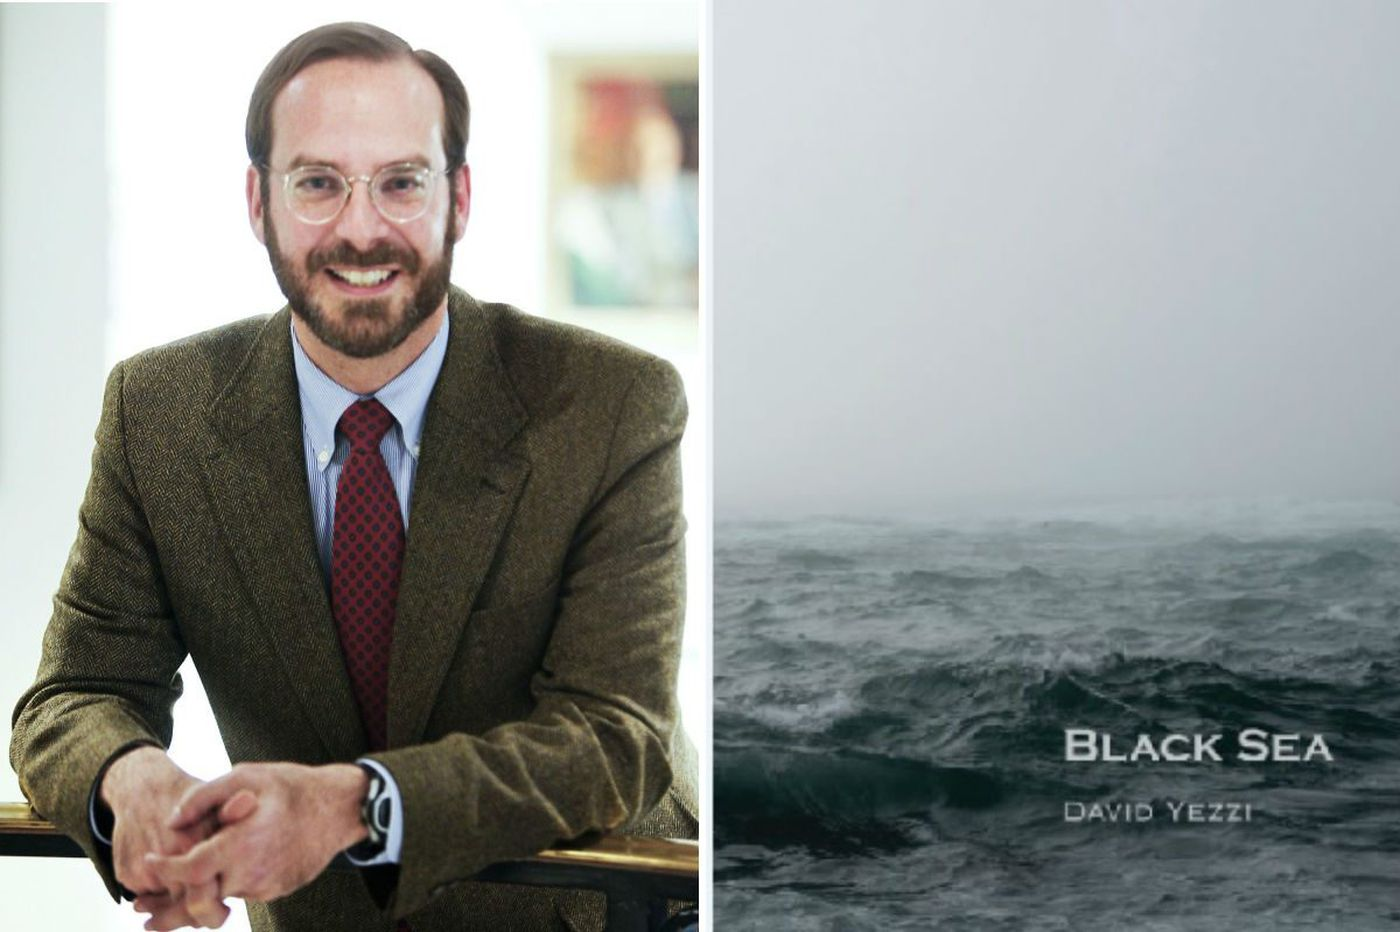 David Yezzi's 'Black Sea': Poems to read, poems for right now